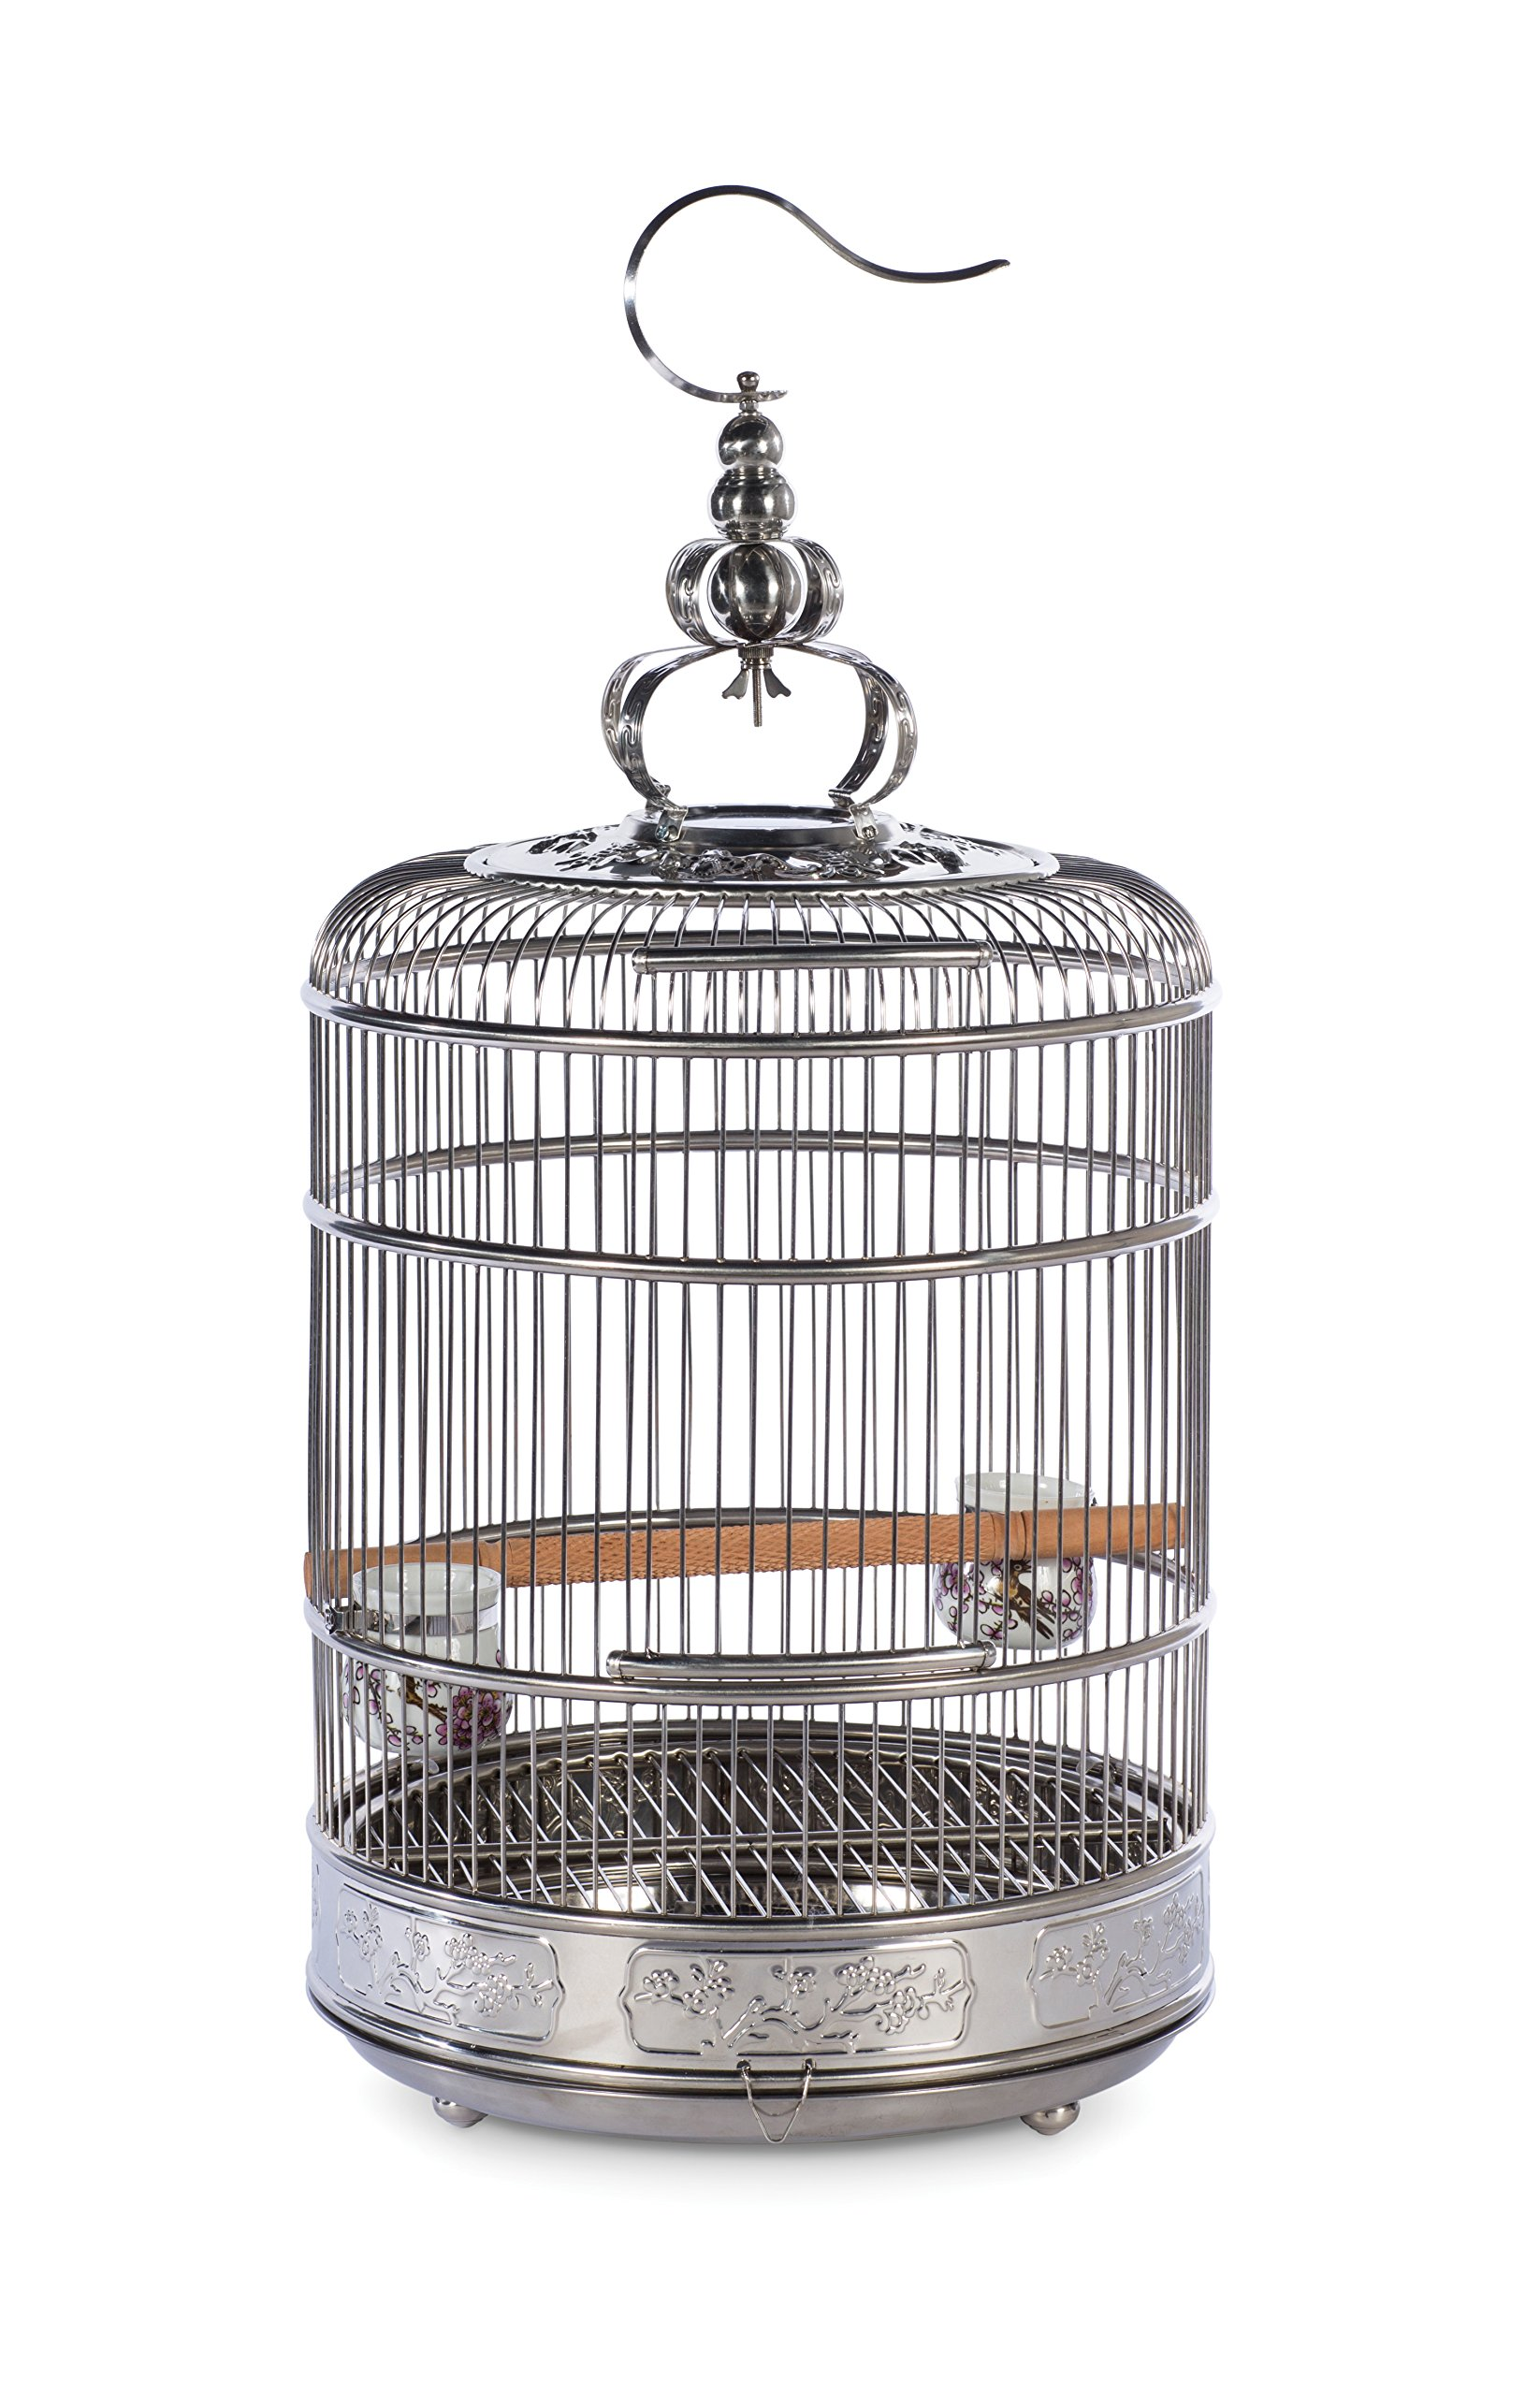 Prevue Pet Products Prevue Pet Products Lotus Stainless Steel Bird Cage 150, Stainless Steel